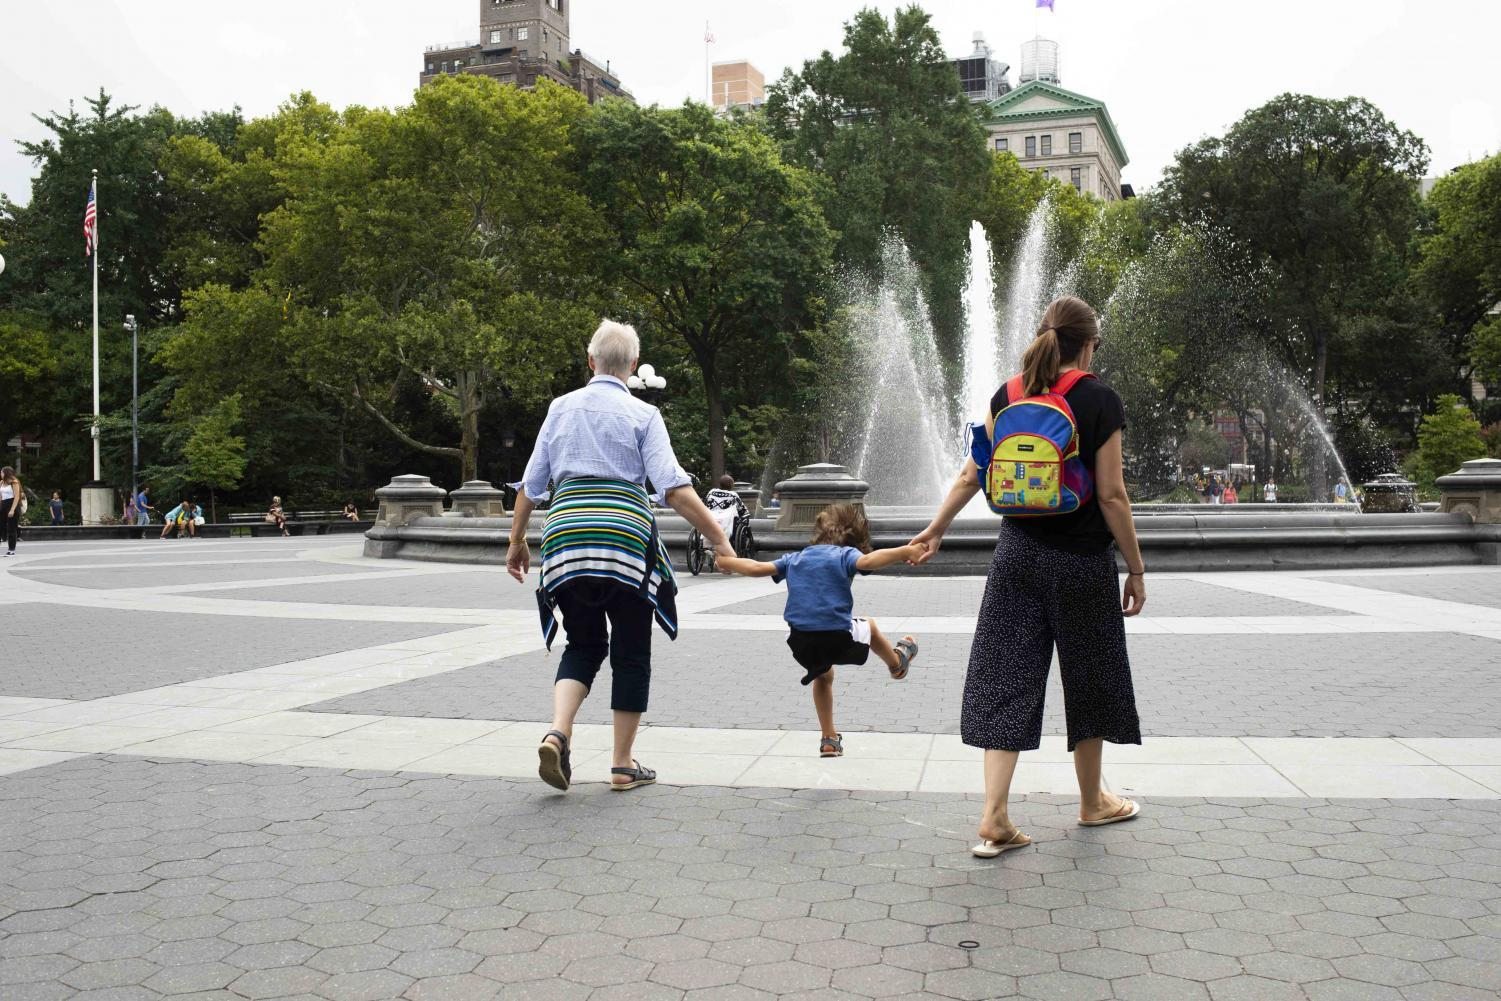 A boy jumps while holding his two guardians' hands in Washington Square Park, the location .